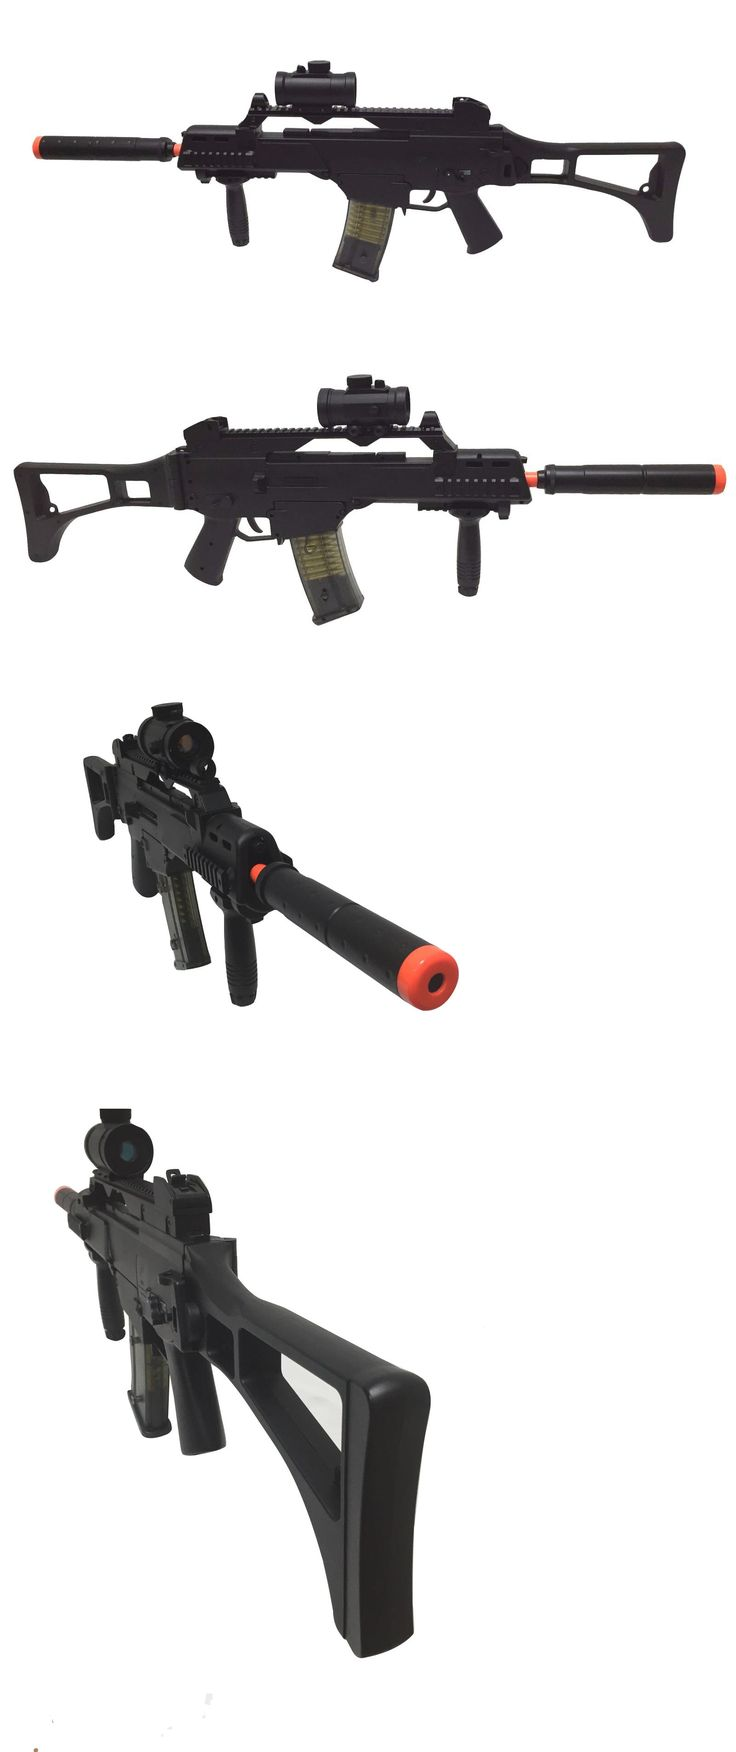 BBs 31682: M85 G36 Double Eagle Electric Airsoft Rifle Bb Gun With Attachments -> BUY IT NOW ONLY: $44.99 on eBay!